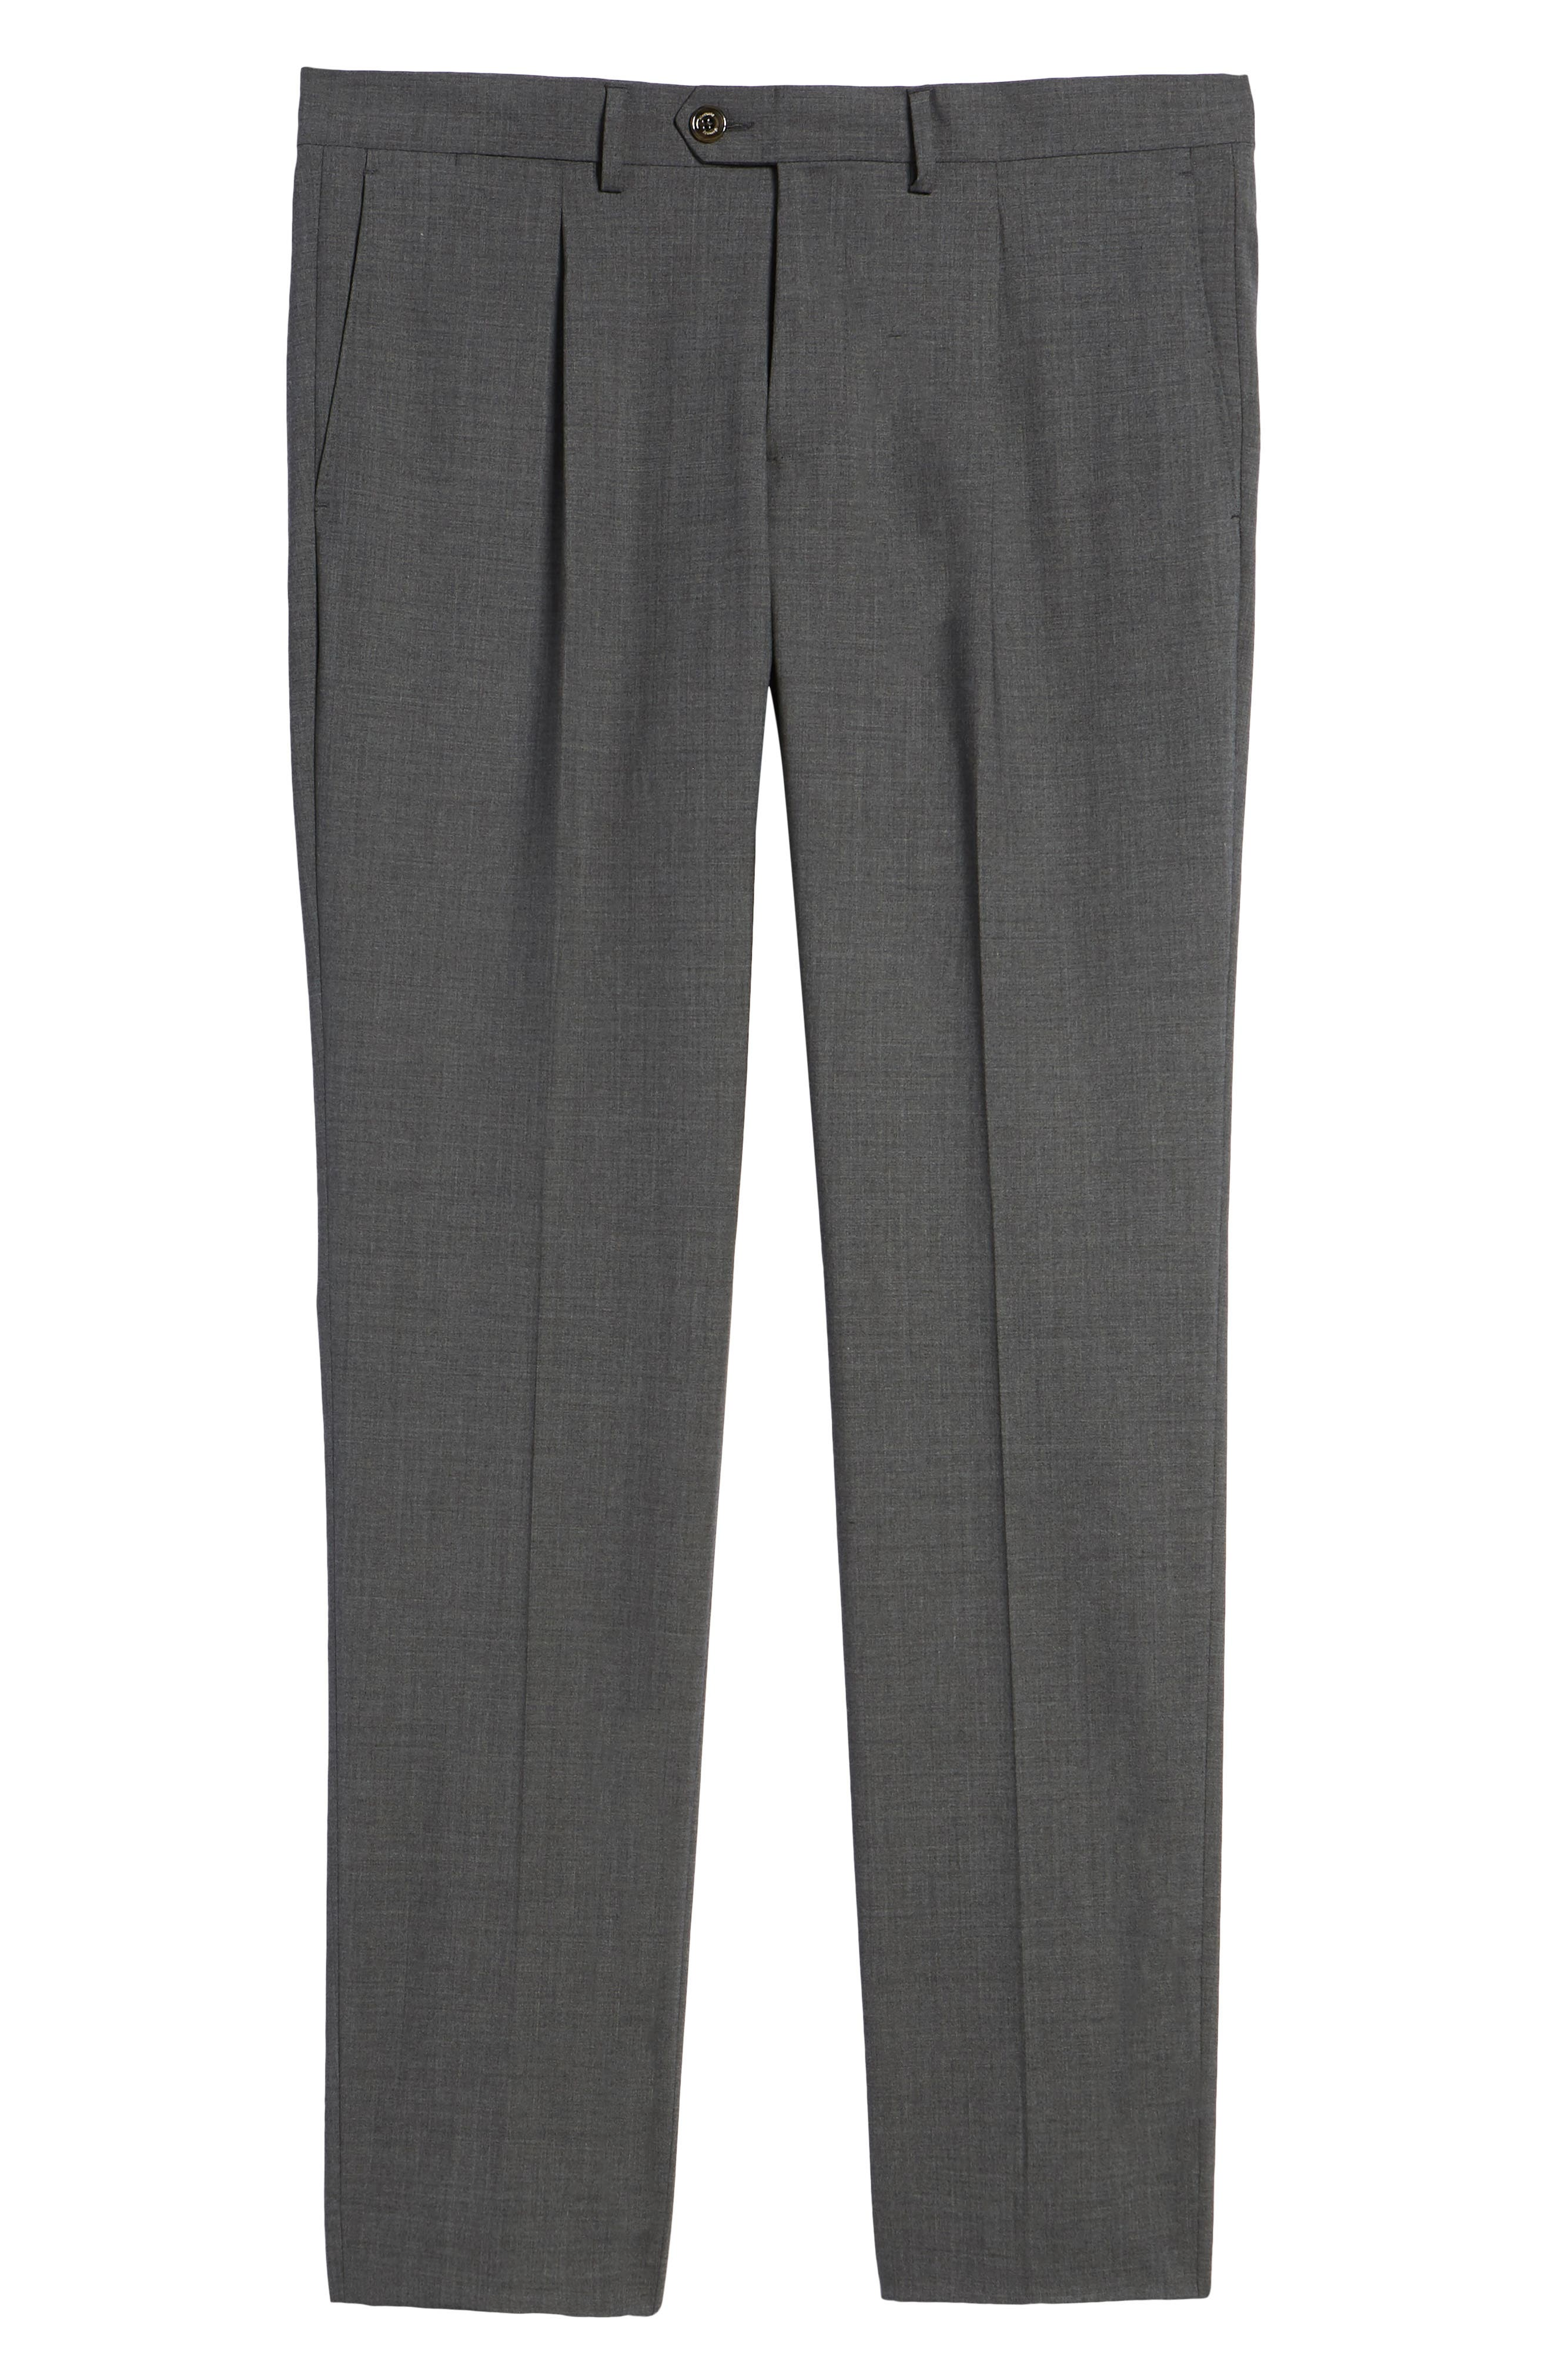 Pleat Front Stretch Solid Wool Trousers,                             Alternate thumbnail 6, color,                             024